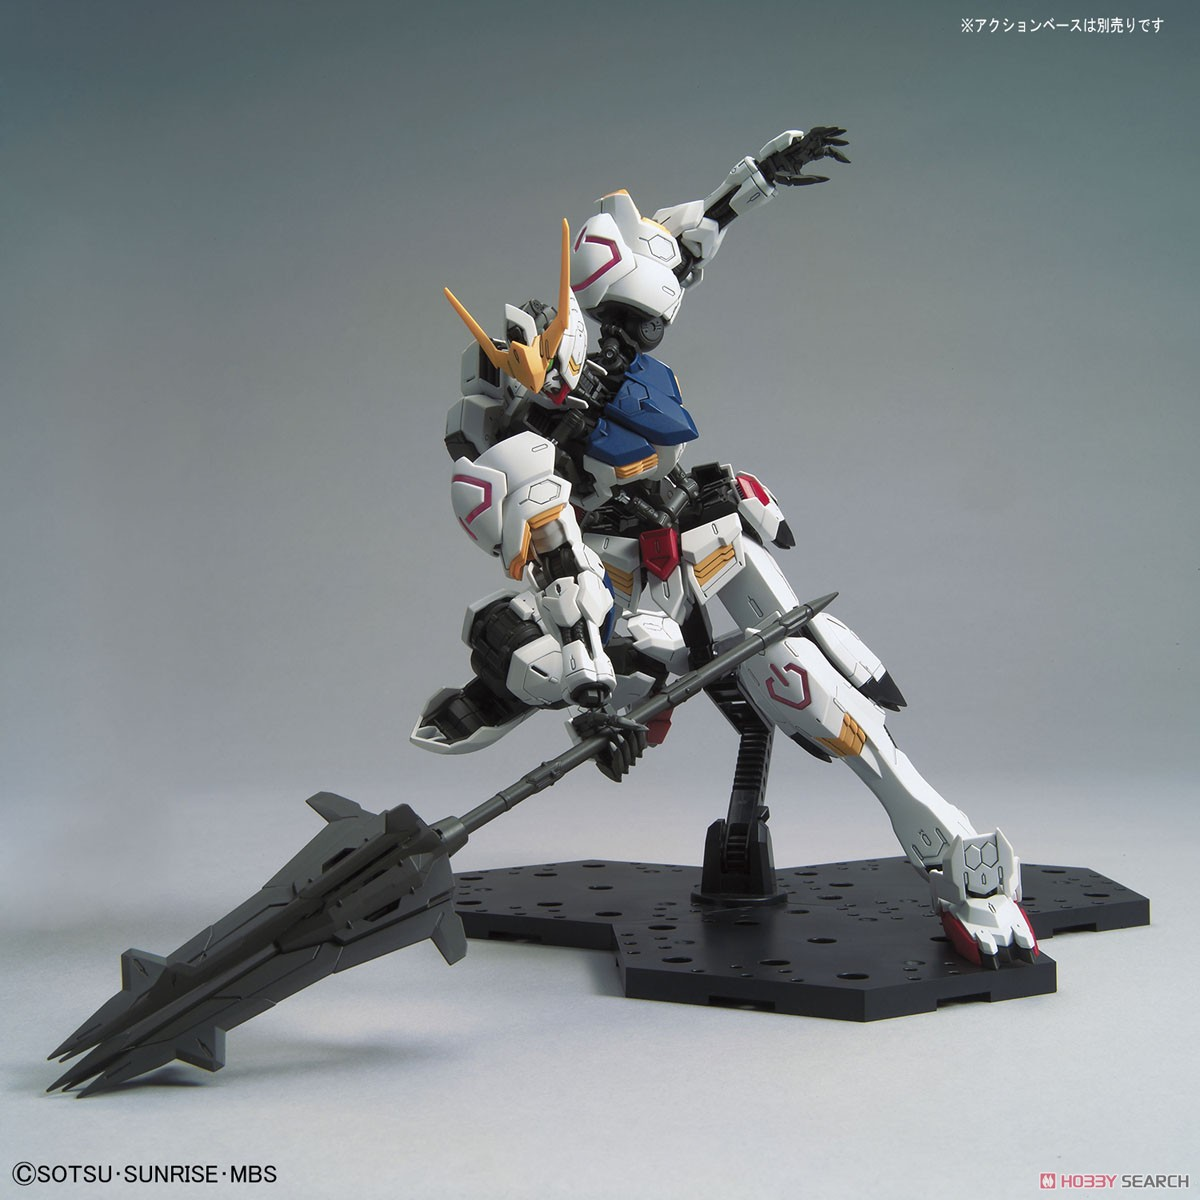 Gundam Barbatos (MG) (Gundam Model Kits) Item picture9